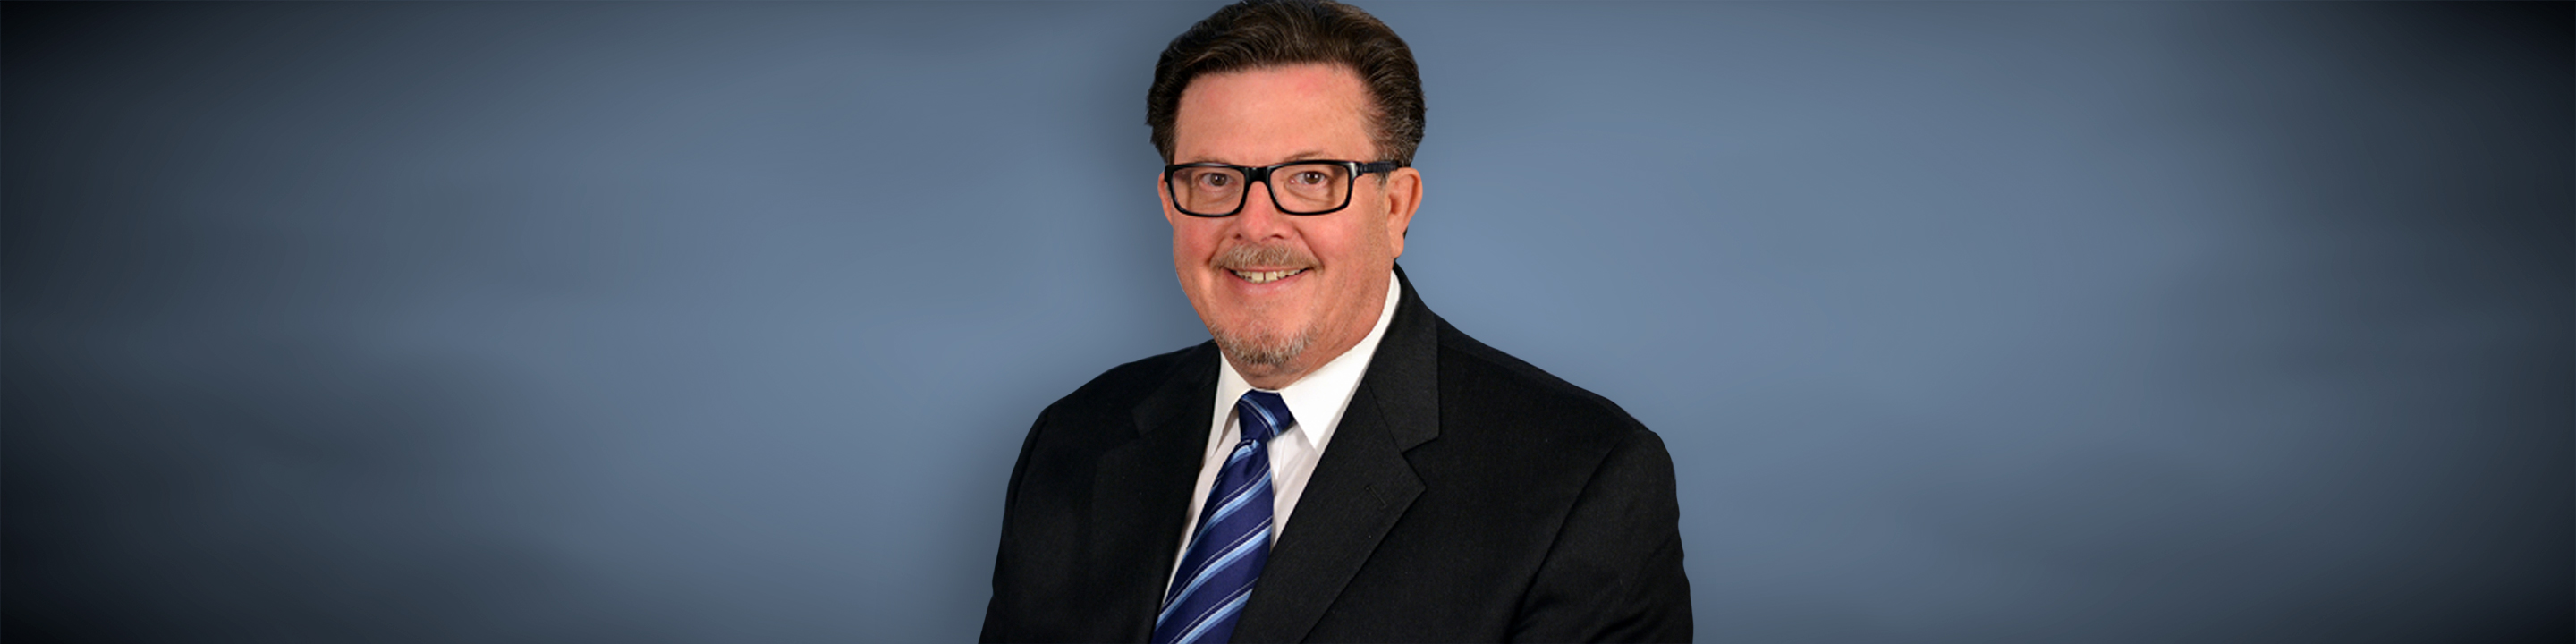 image of Dr. Todd Beyer.